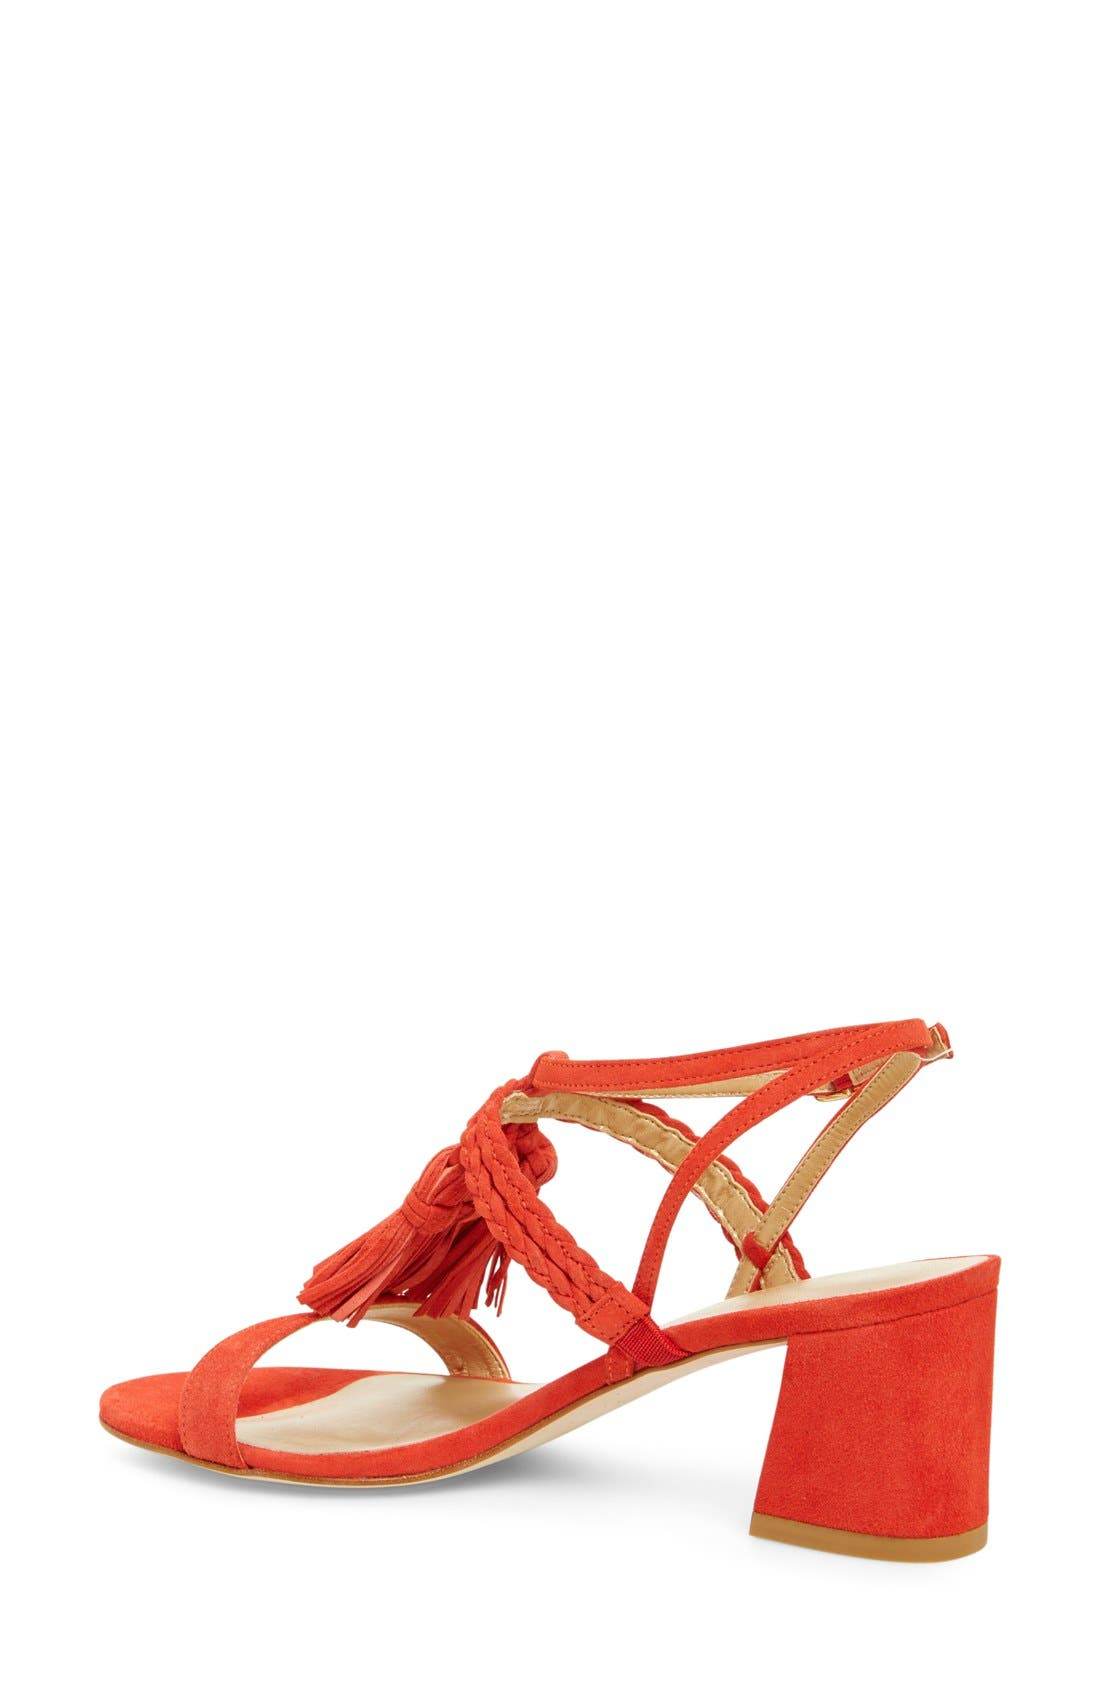 'Tasselmania' Strappy Sandal,                             Alternate thumbnail 9, color,